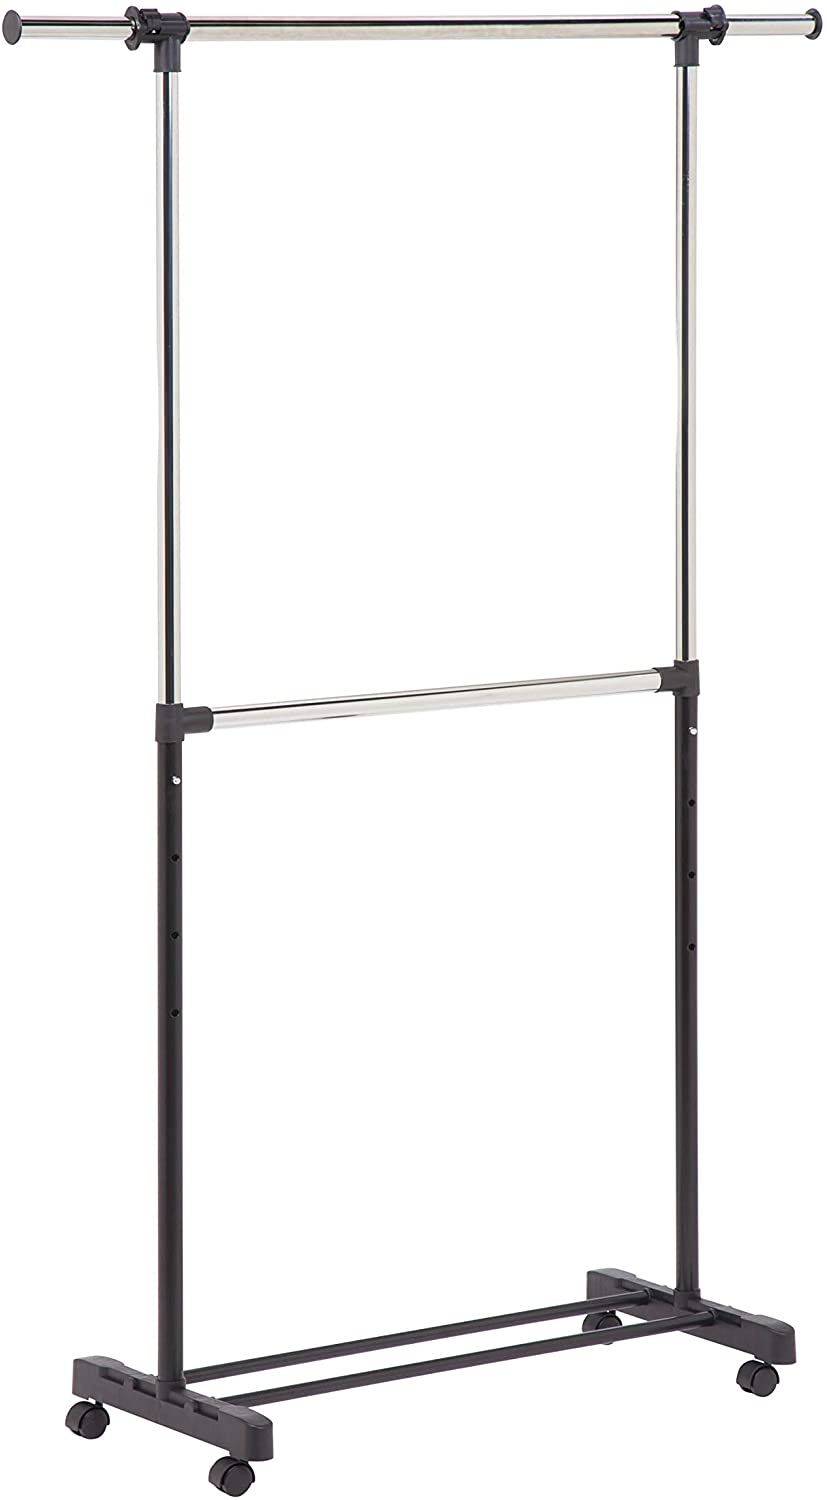 Honey-Can-Do GAR-01767 Dual Rod Expandable Garment Rack with Wheels, ,Black,60in L x 17in W x 73in H: Home & Kitchen